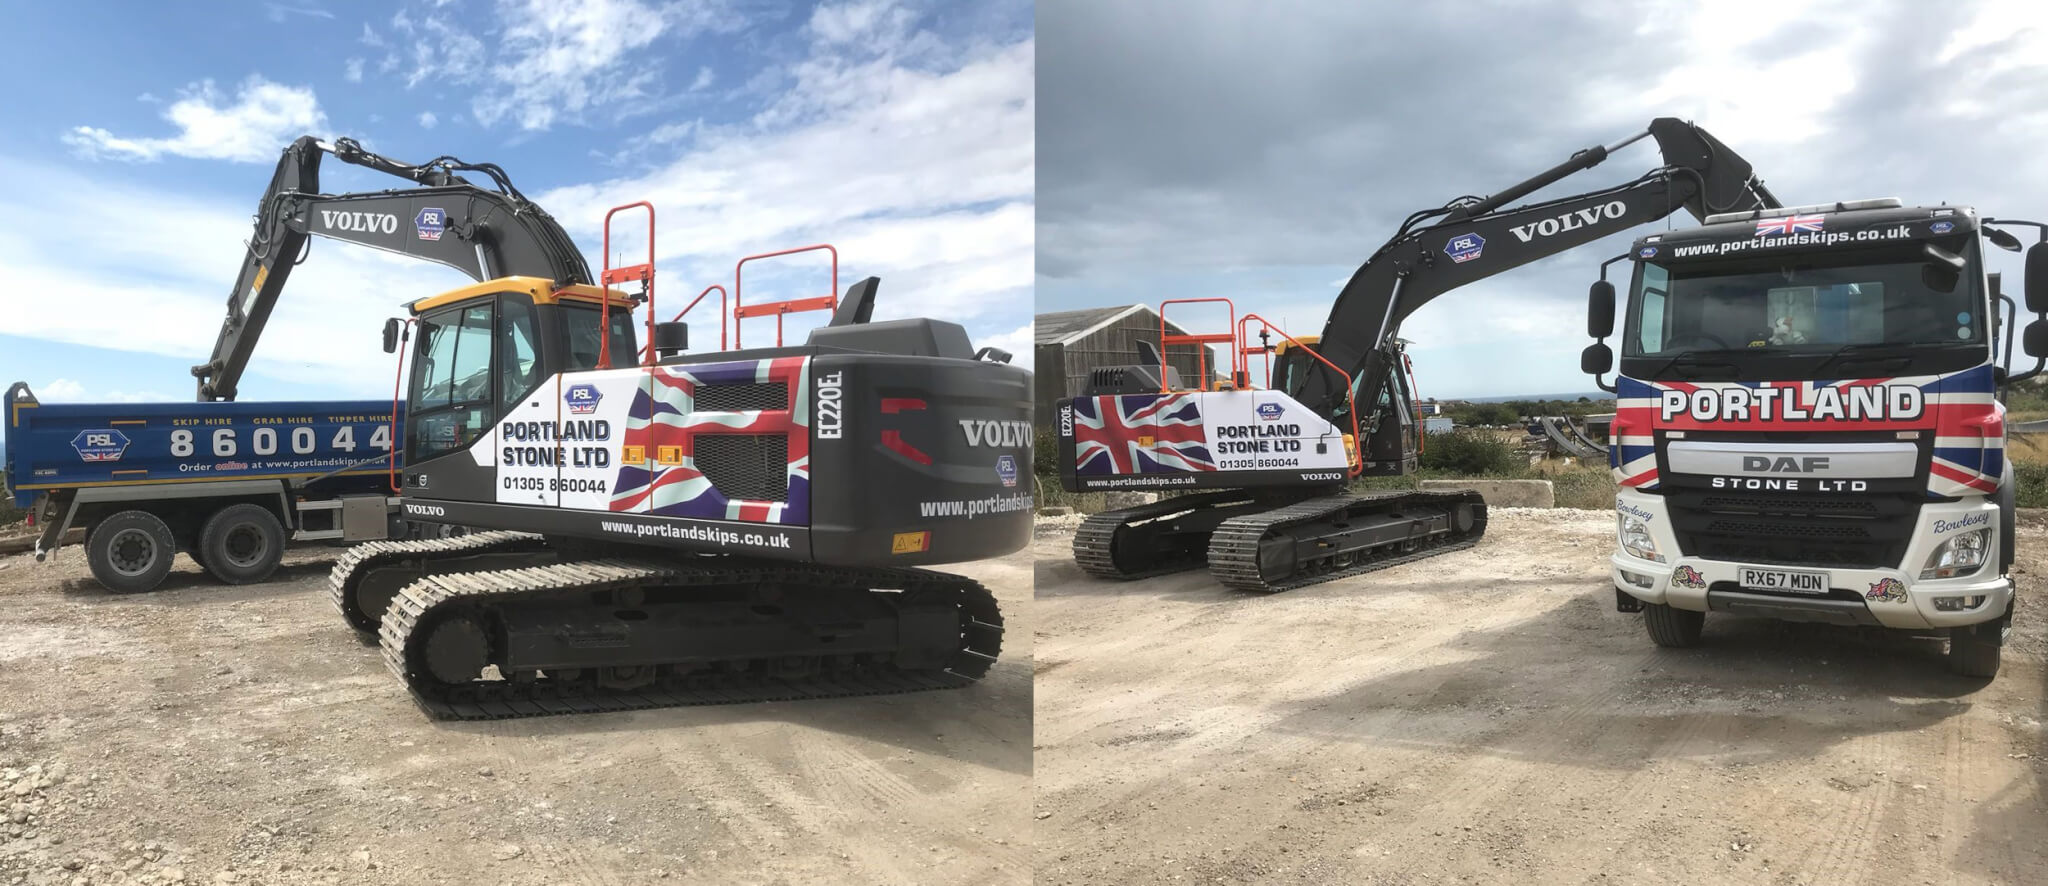 Portland Stone Add New Volvo EC220 Excavator To The Company